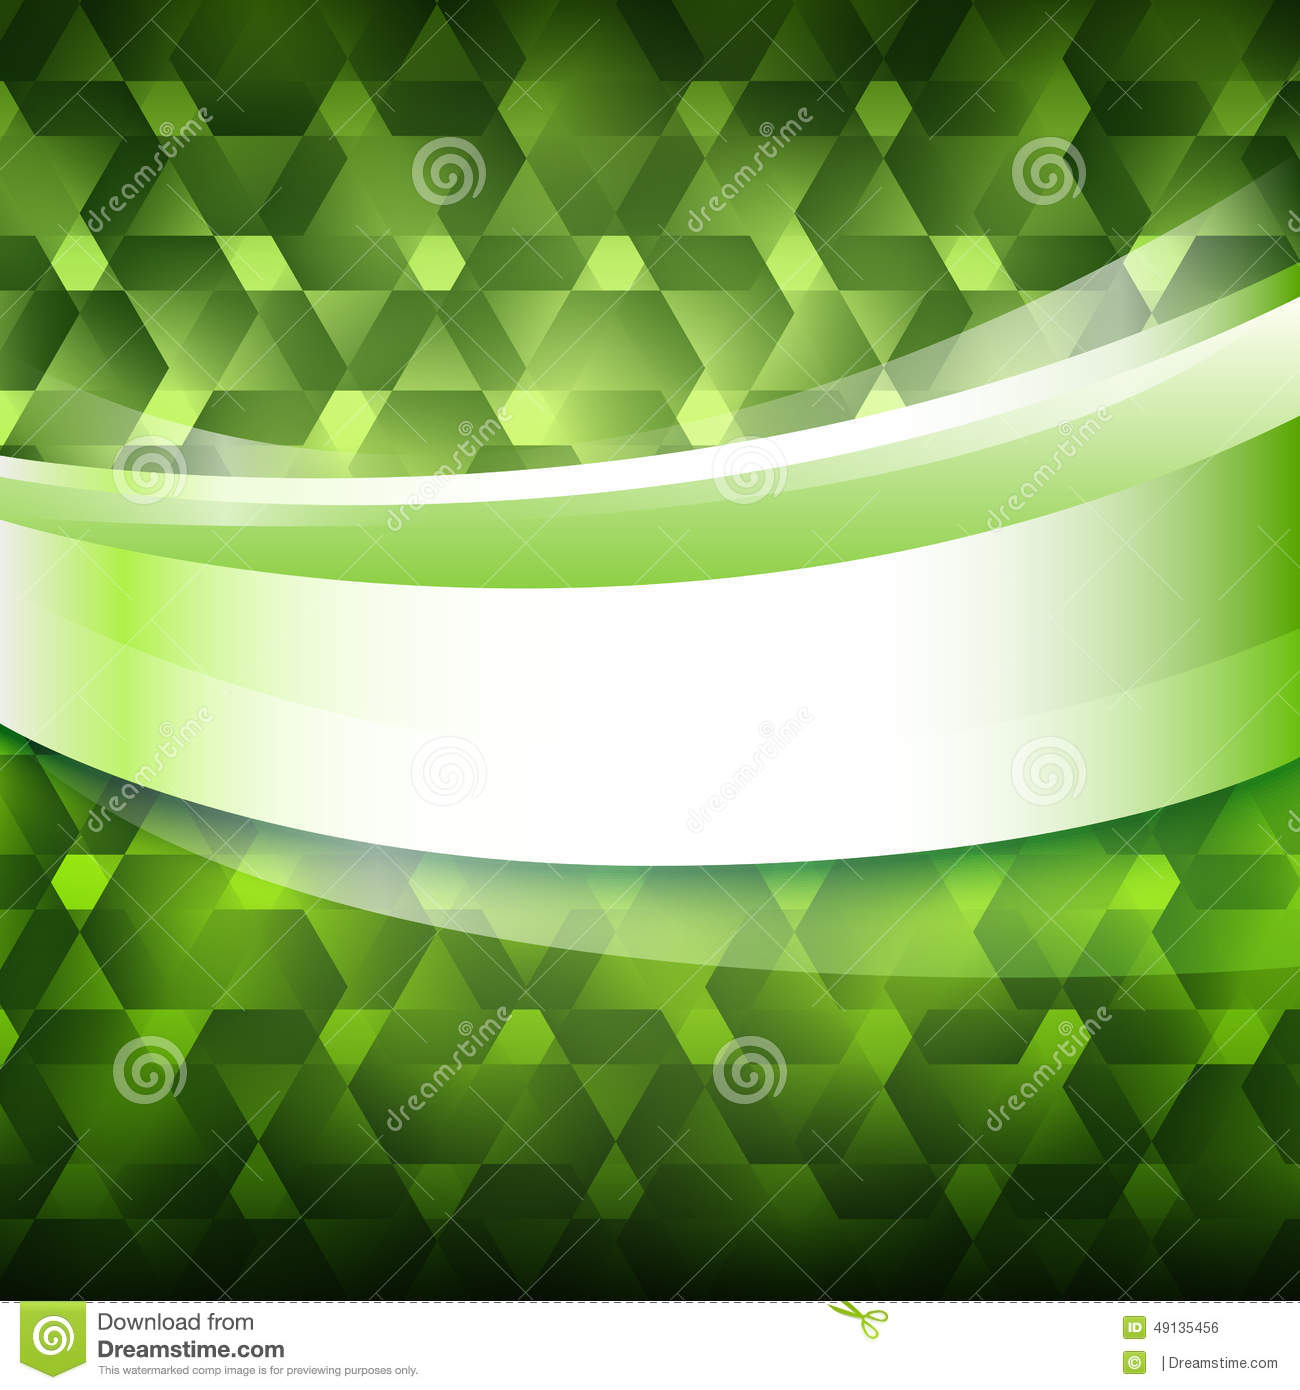 New Product Label Green Glowing Background Vector Image – Product Label Template